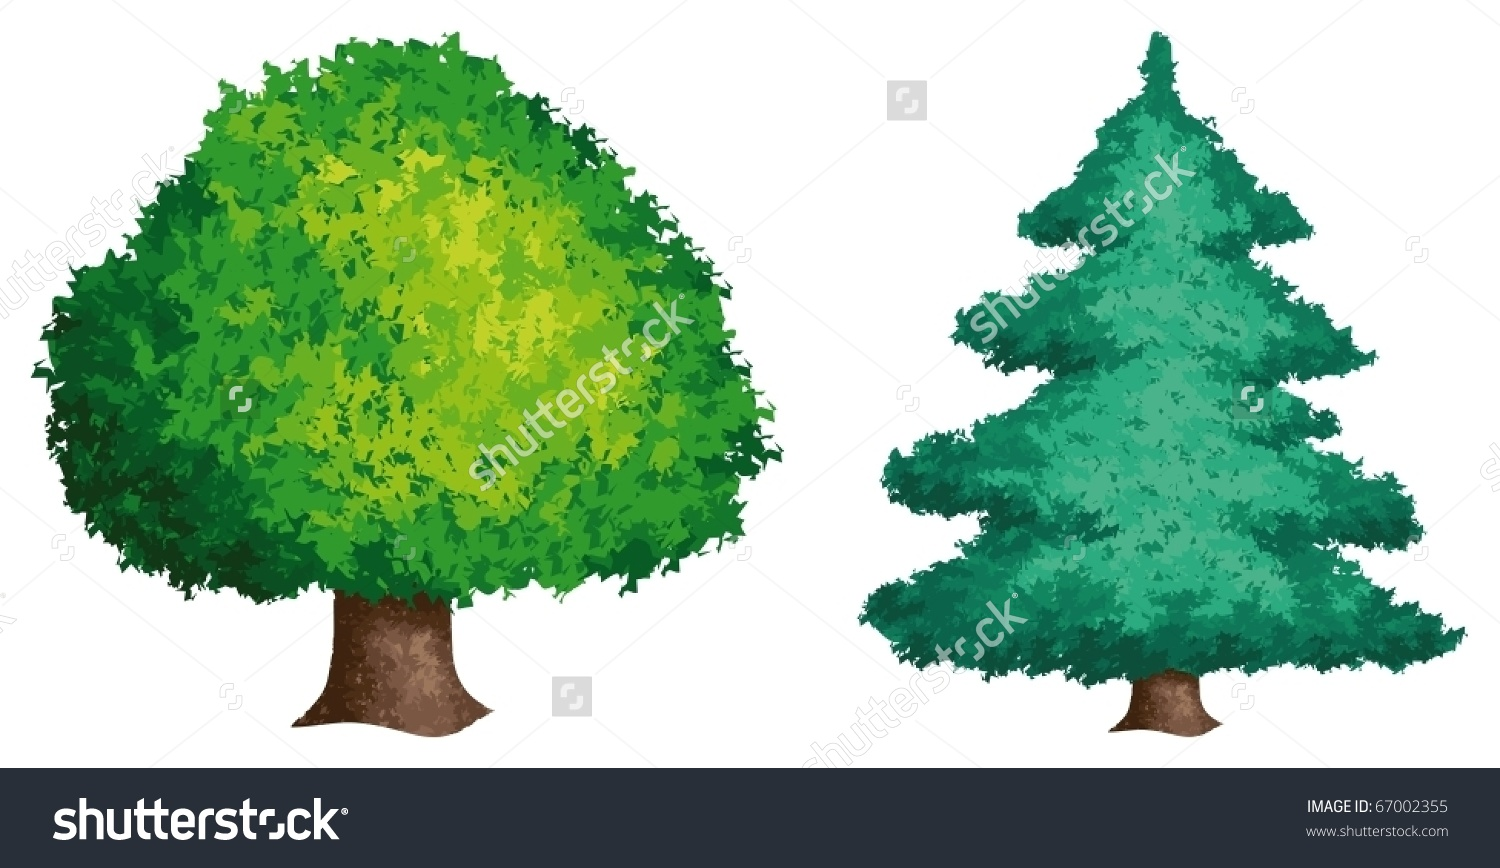 Detailed Image Coniferous Deciduous Tree Stock Vector 67002355.